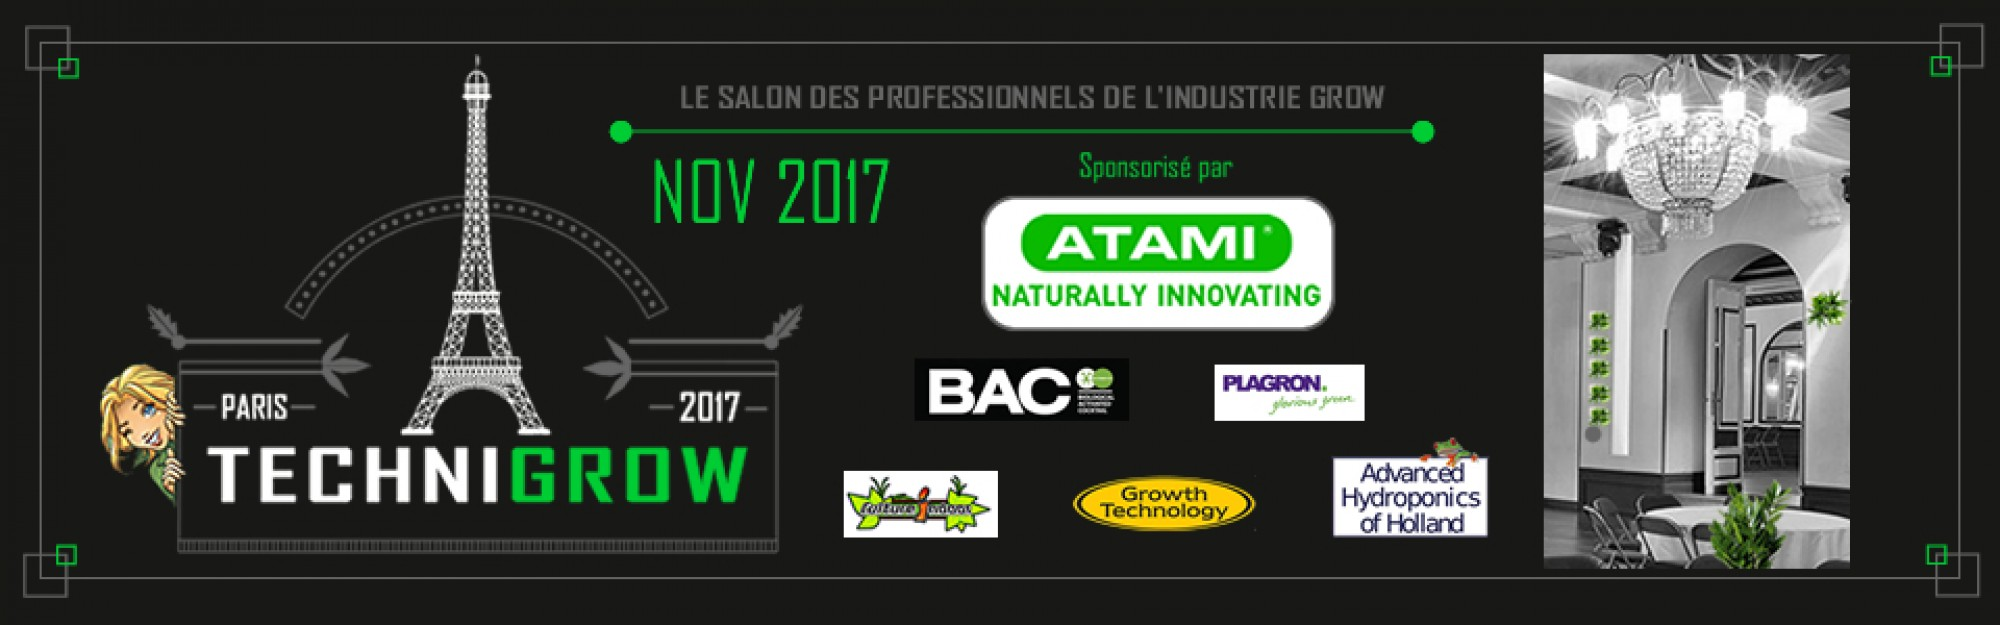 Technigrow France, le salon des professionnels du secteur grow français